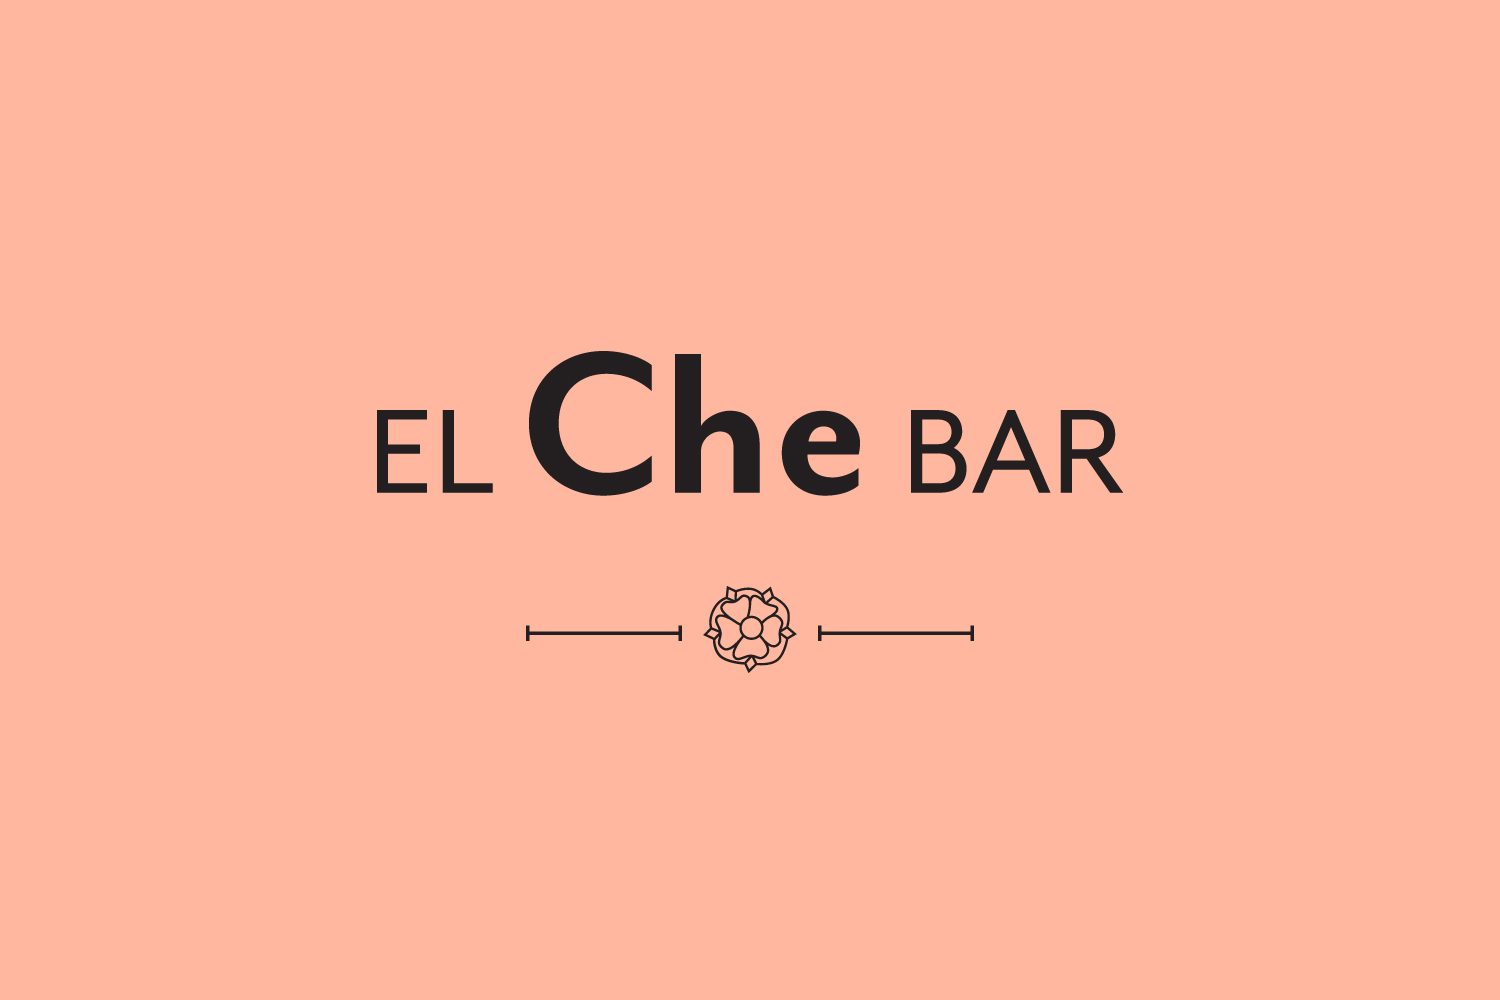 El Che Bar Chicago restaurant branding.